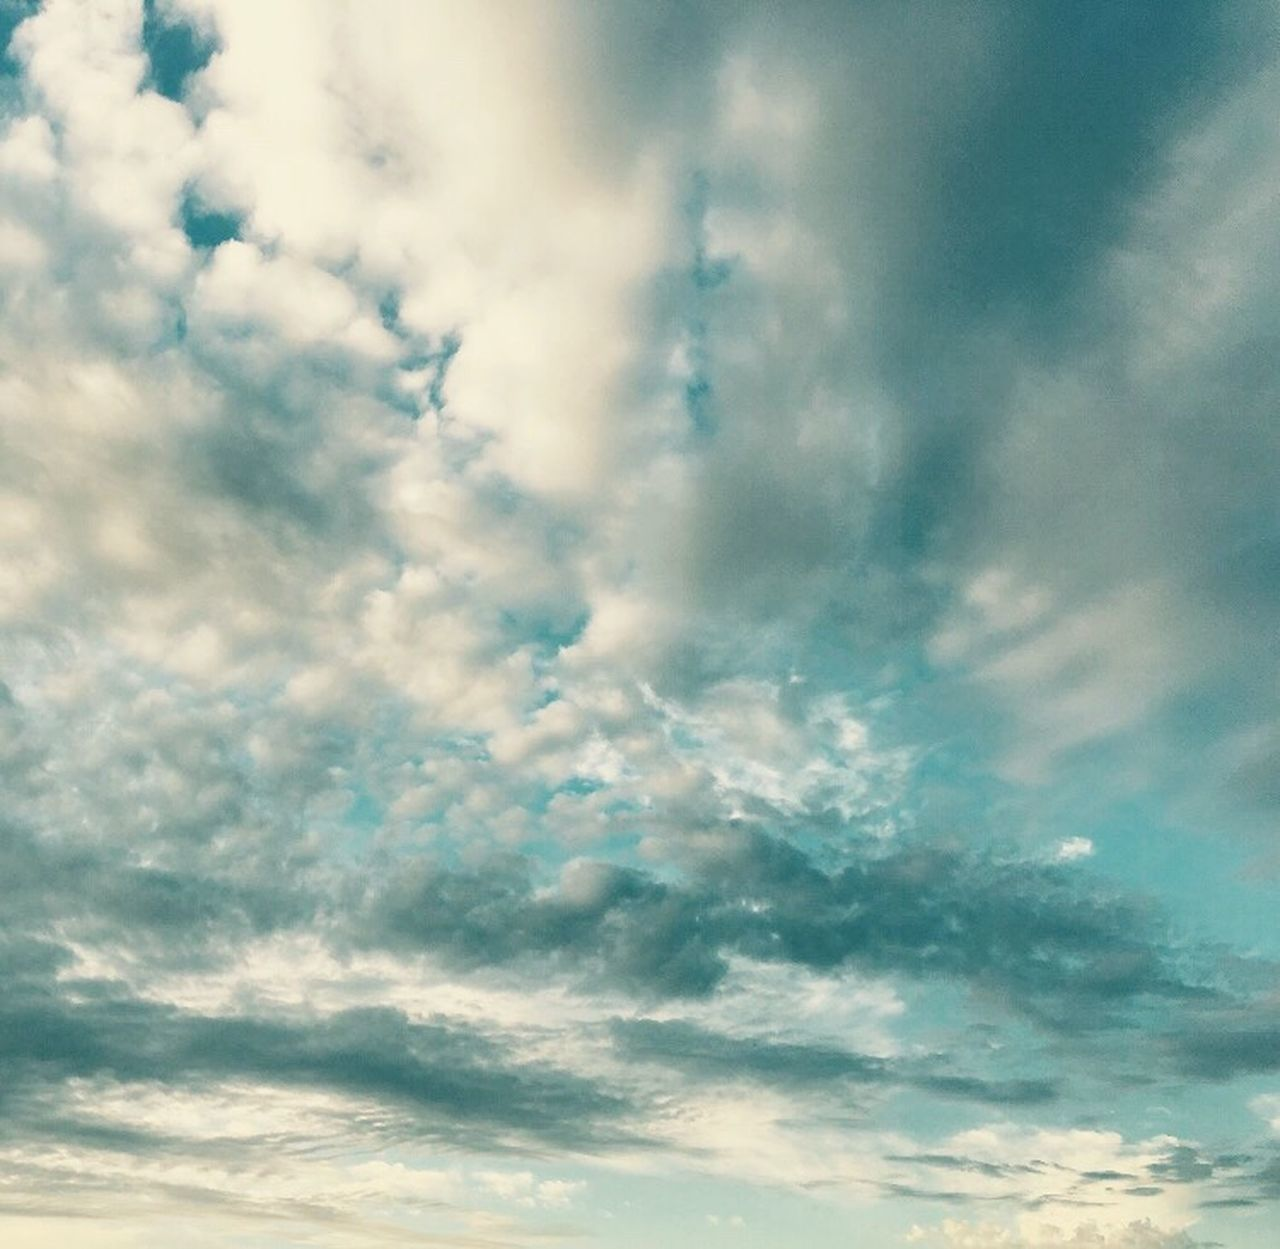 beauty in nature, nature, sky, low angle view, cloud - sky, backgrounds, sky only, cloudscape, full frame, no people, tranquility, scenics, day, outdoors